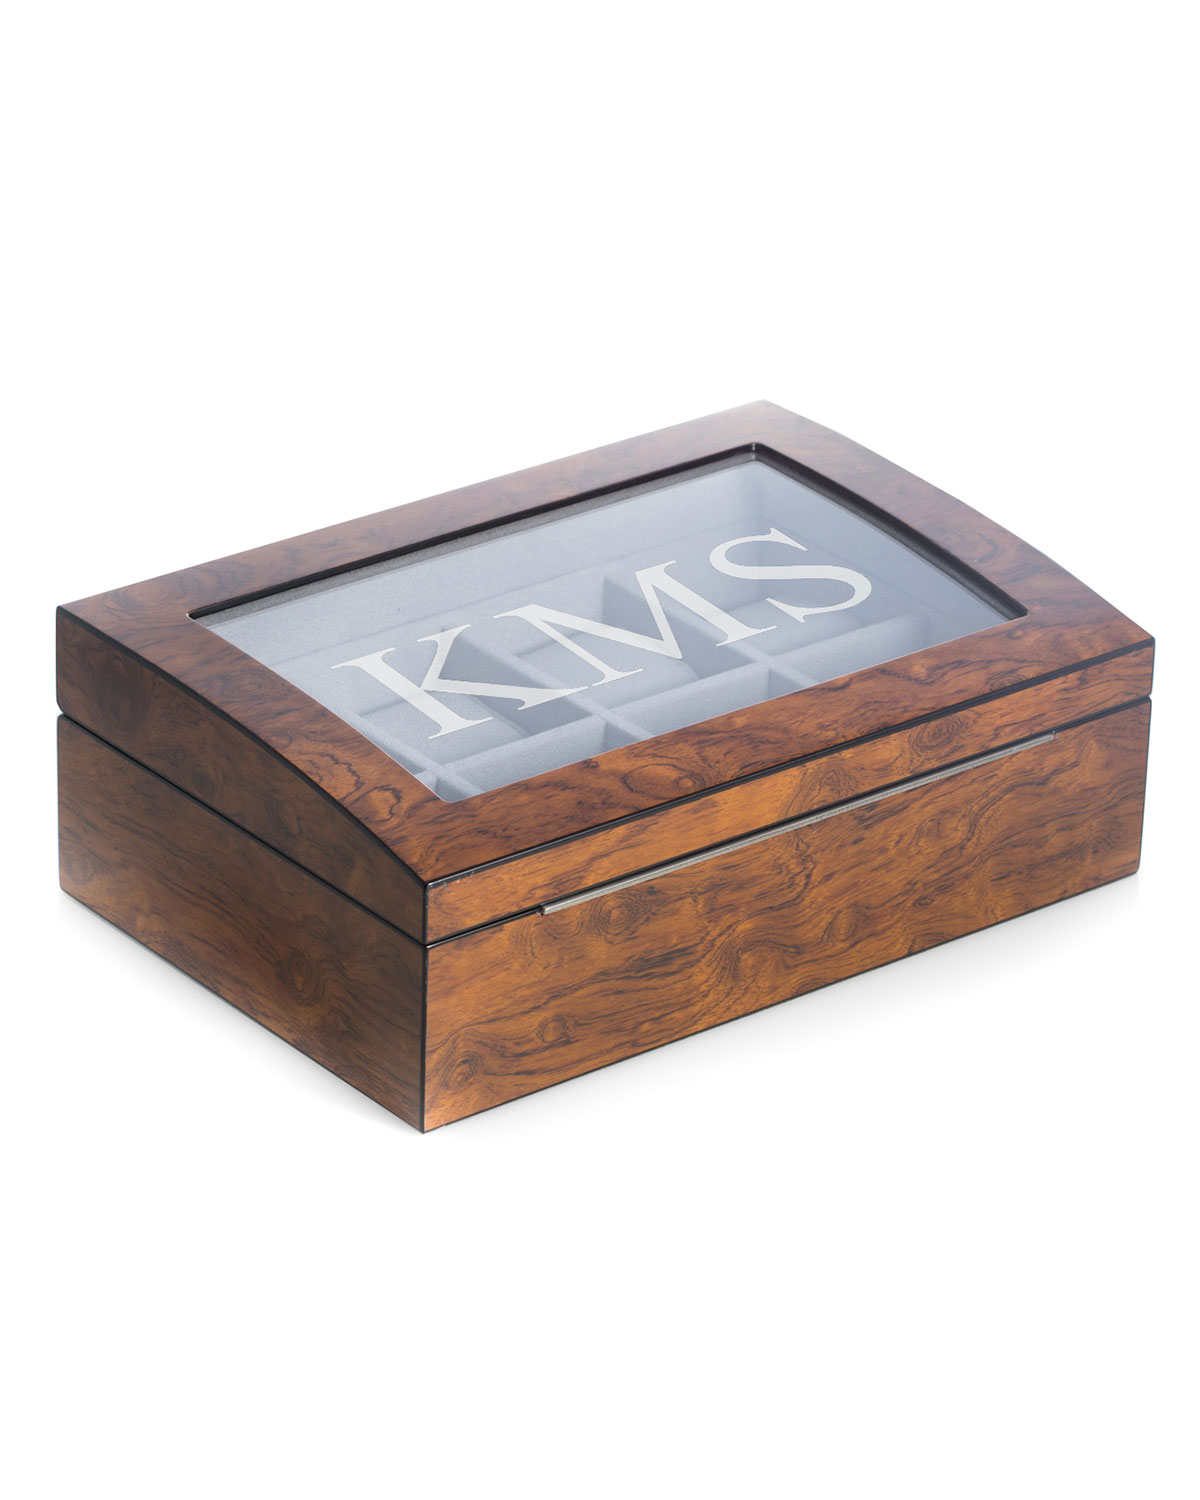 Men's Personalized Wooden Watch & Accessory Storage Case